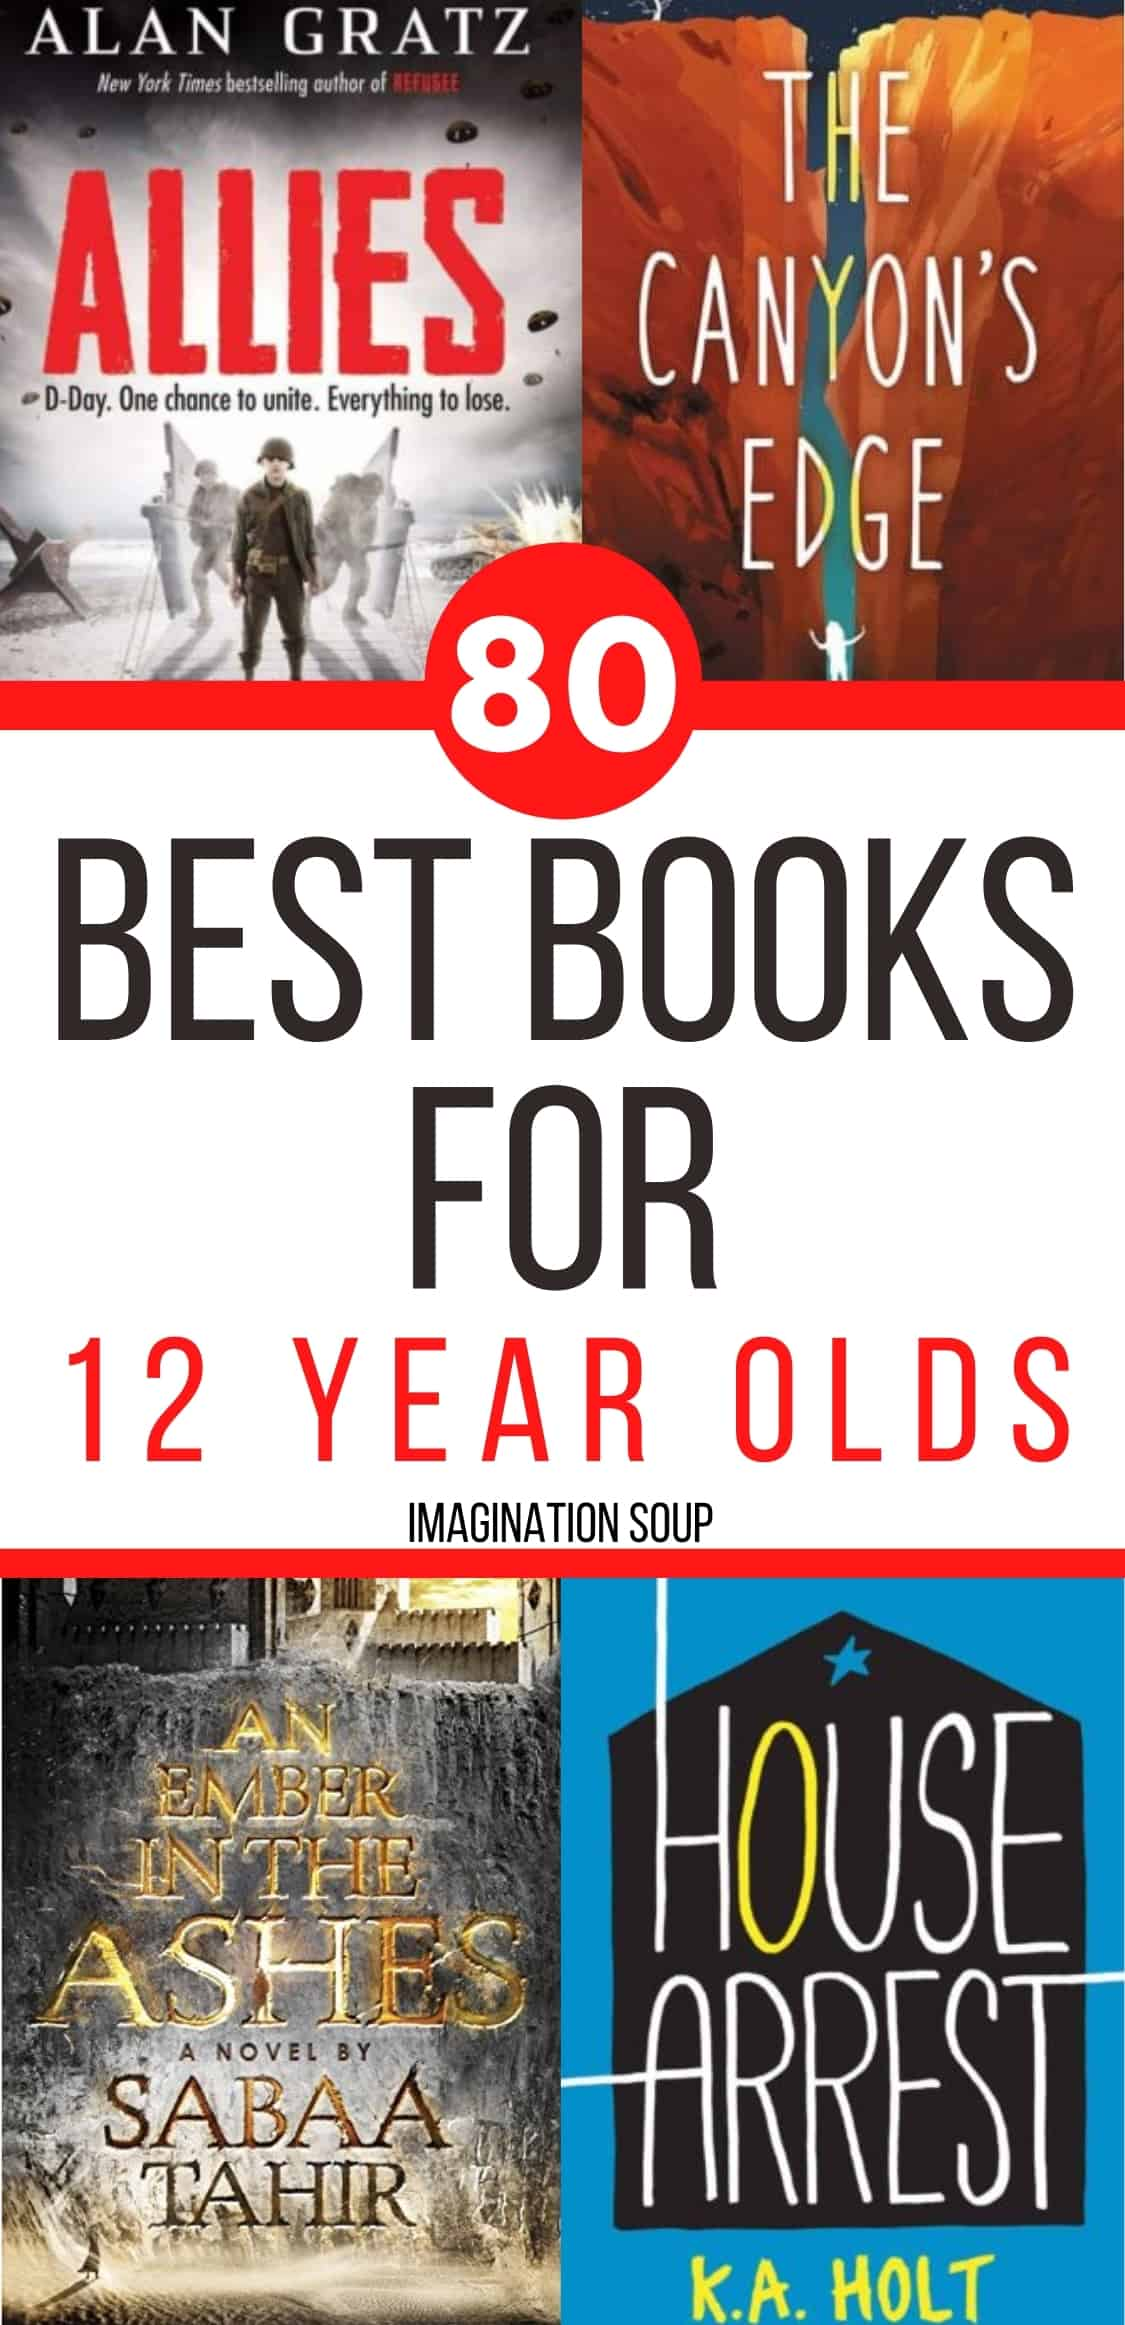 discover the best books for 12 year olds (7th grade)